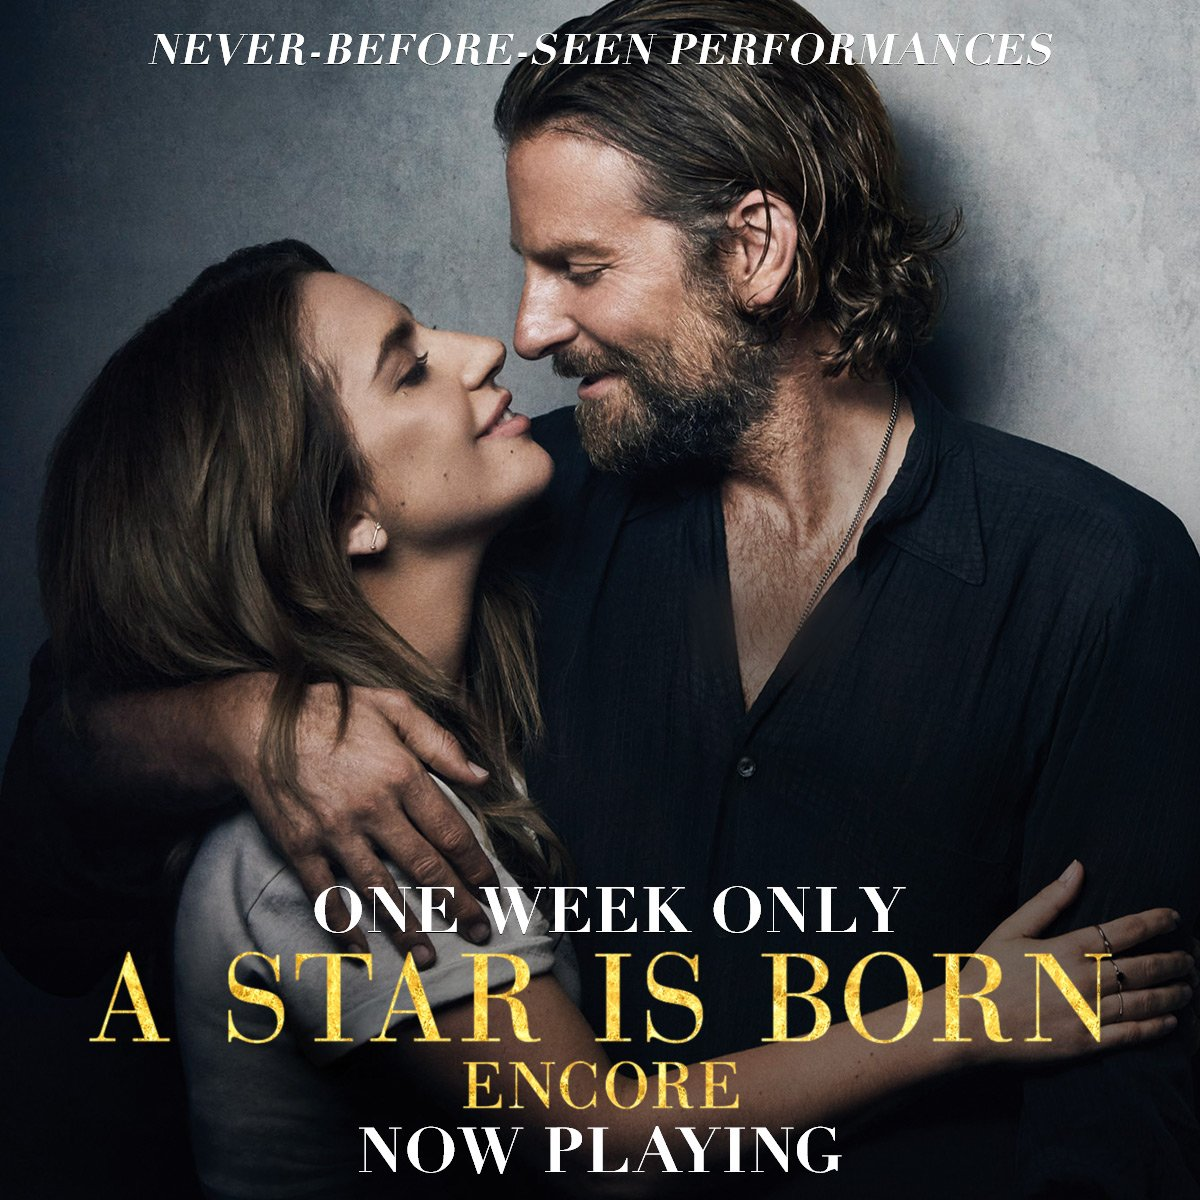 #AStarIsBorn  Encore is now playing in theaters for one week only.